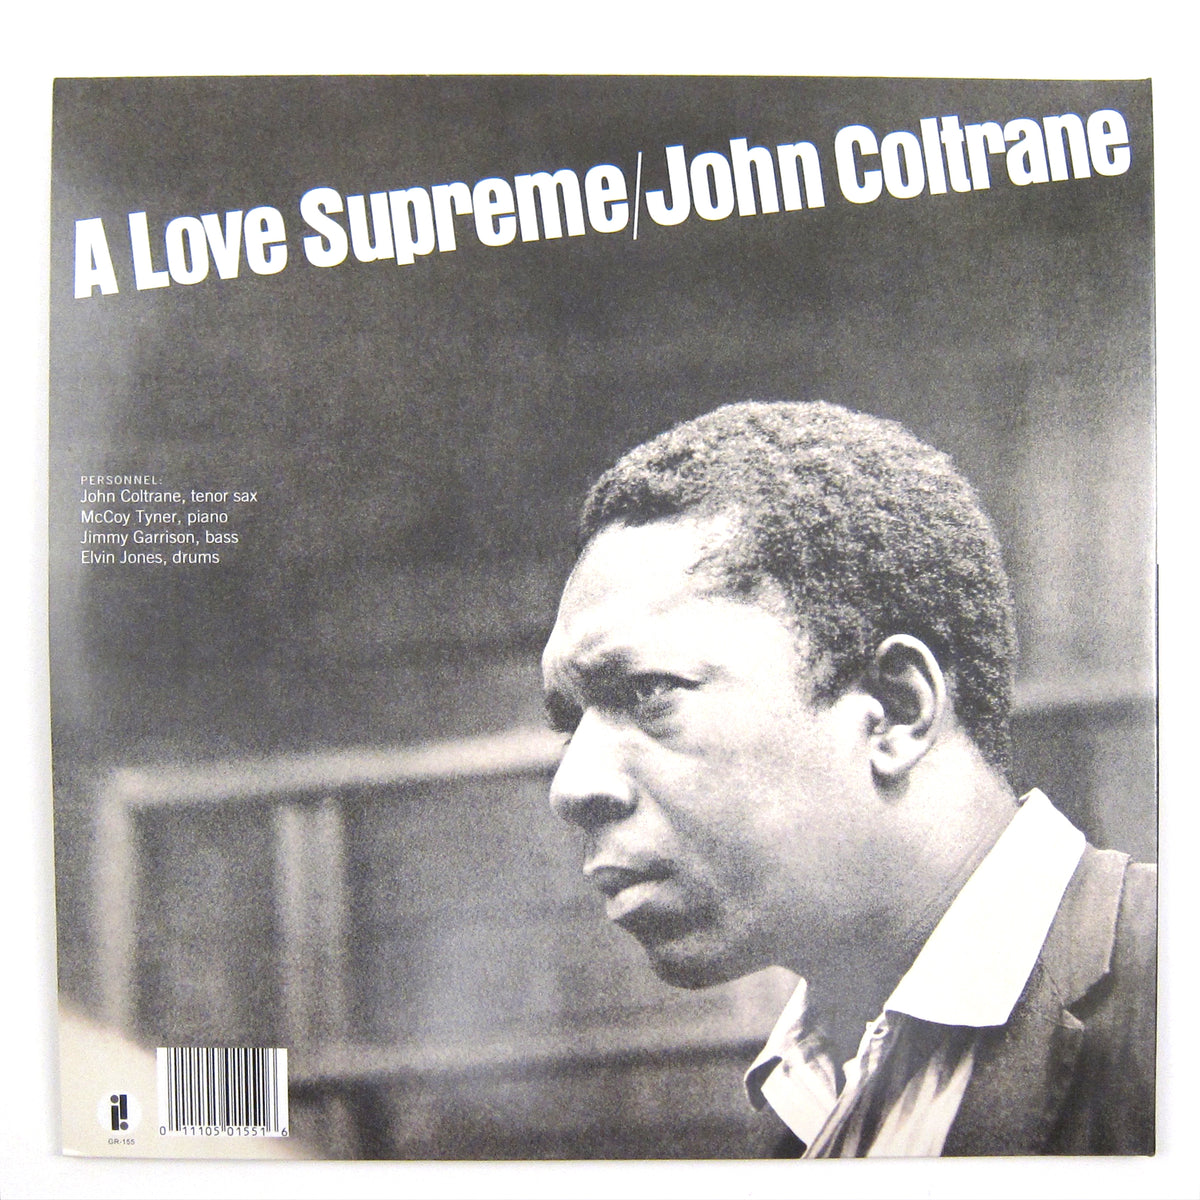 John Coltrane: A Love Supreme (180g, Colored Vinyl) Vinyl LP